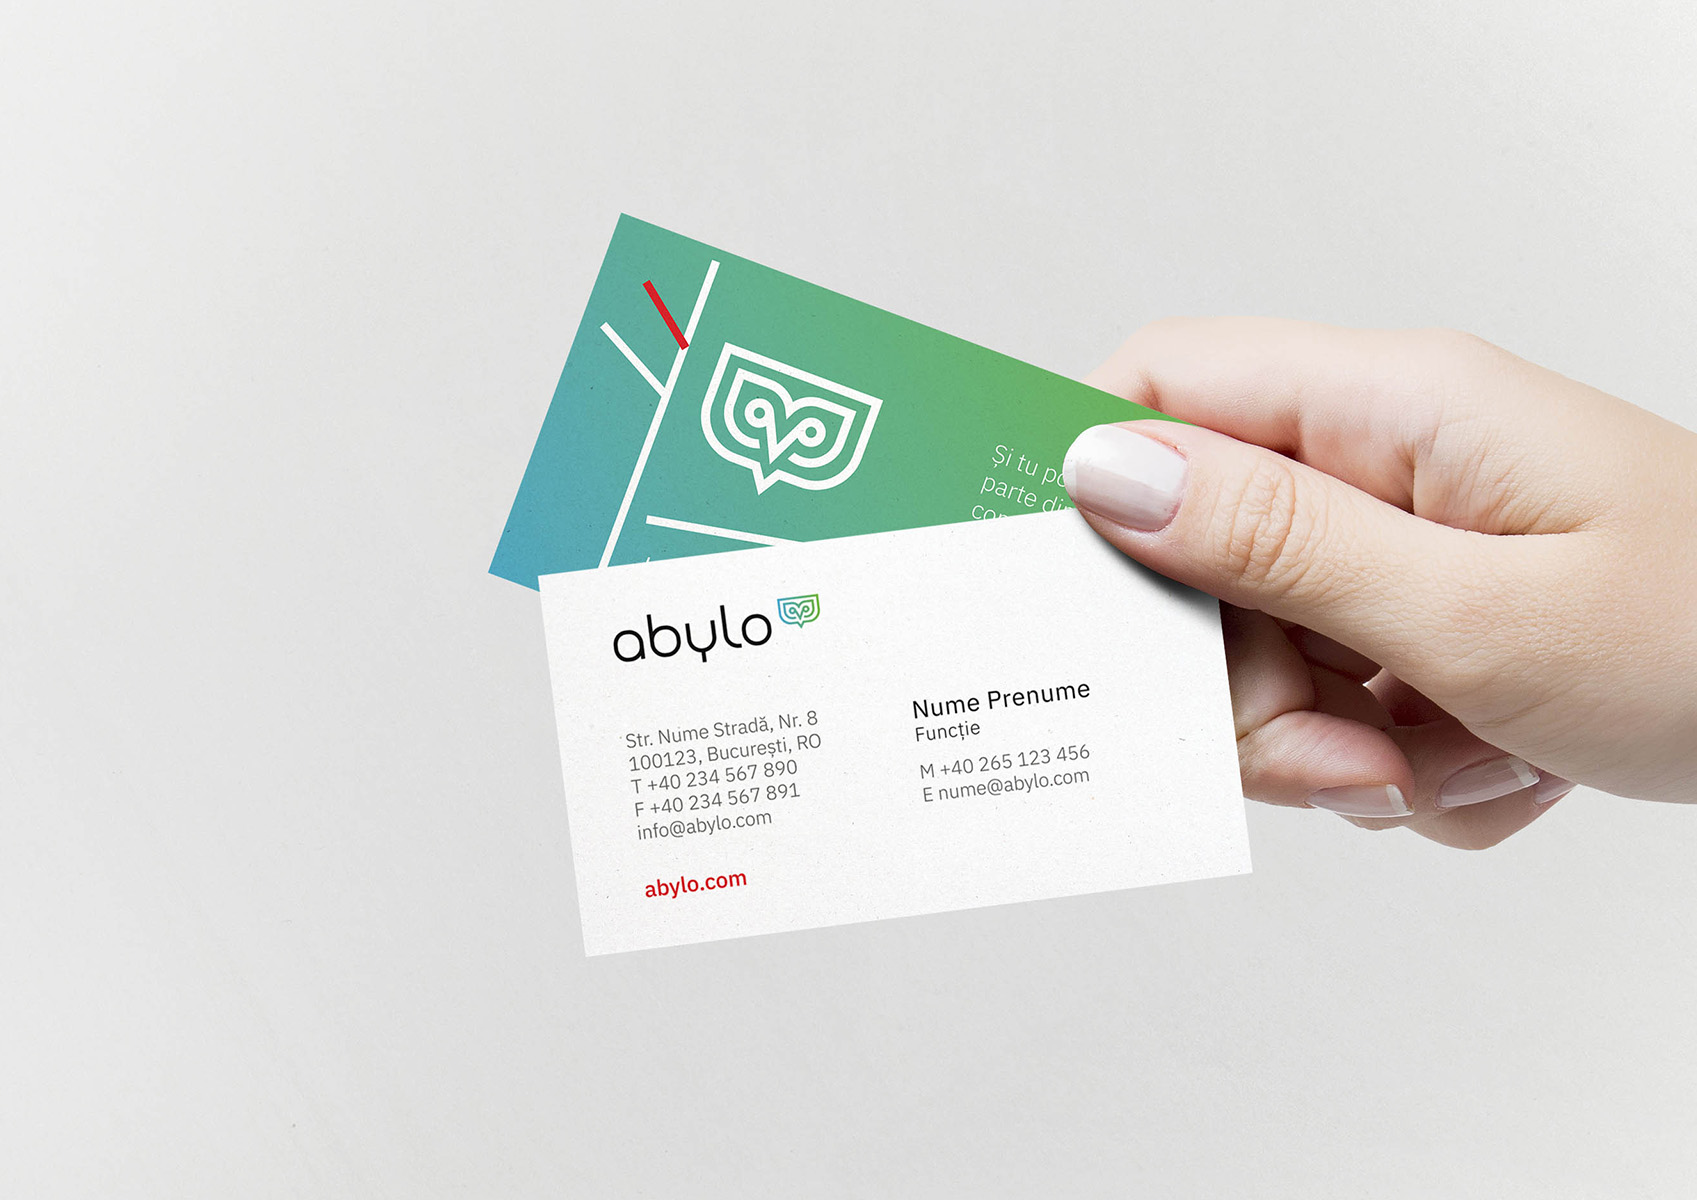 abylo portofolio inoveo Business Card